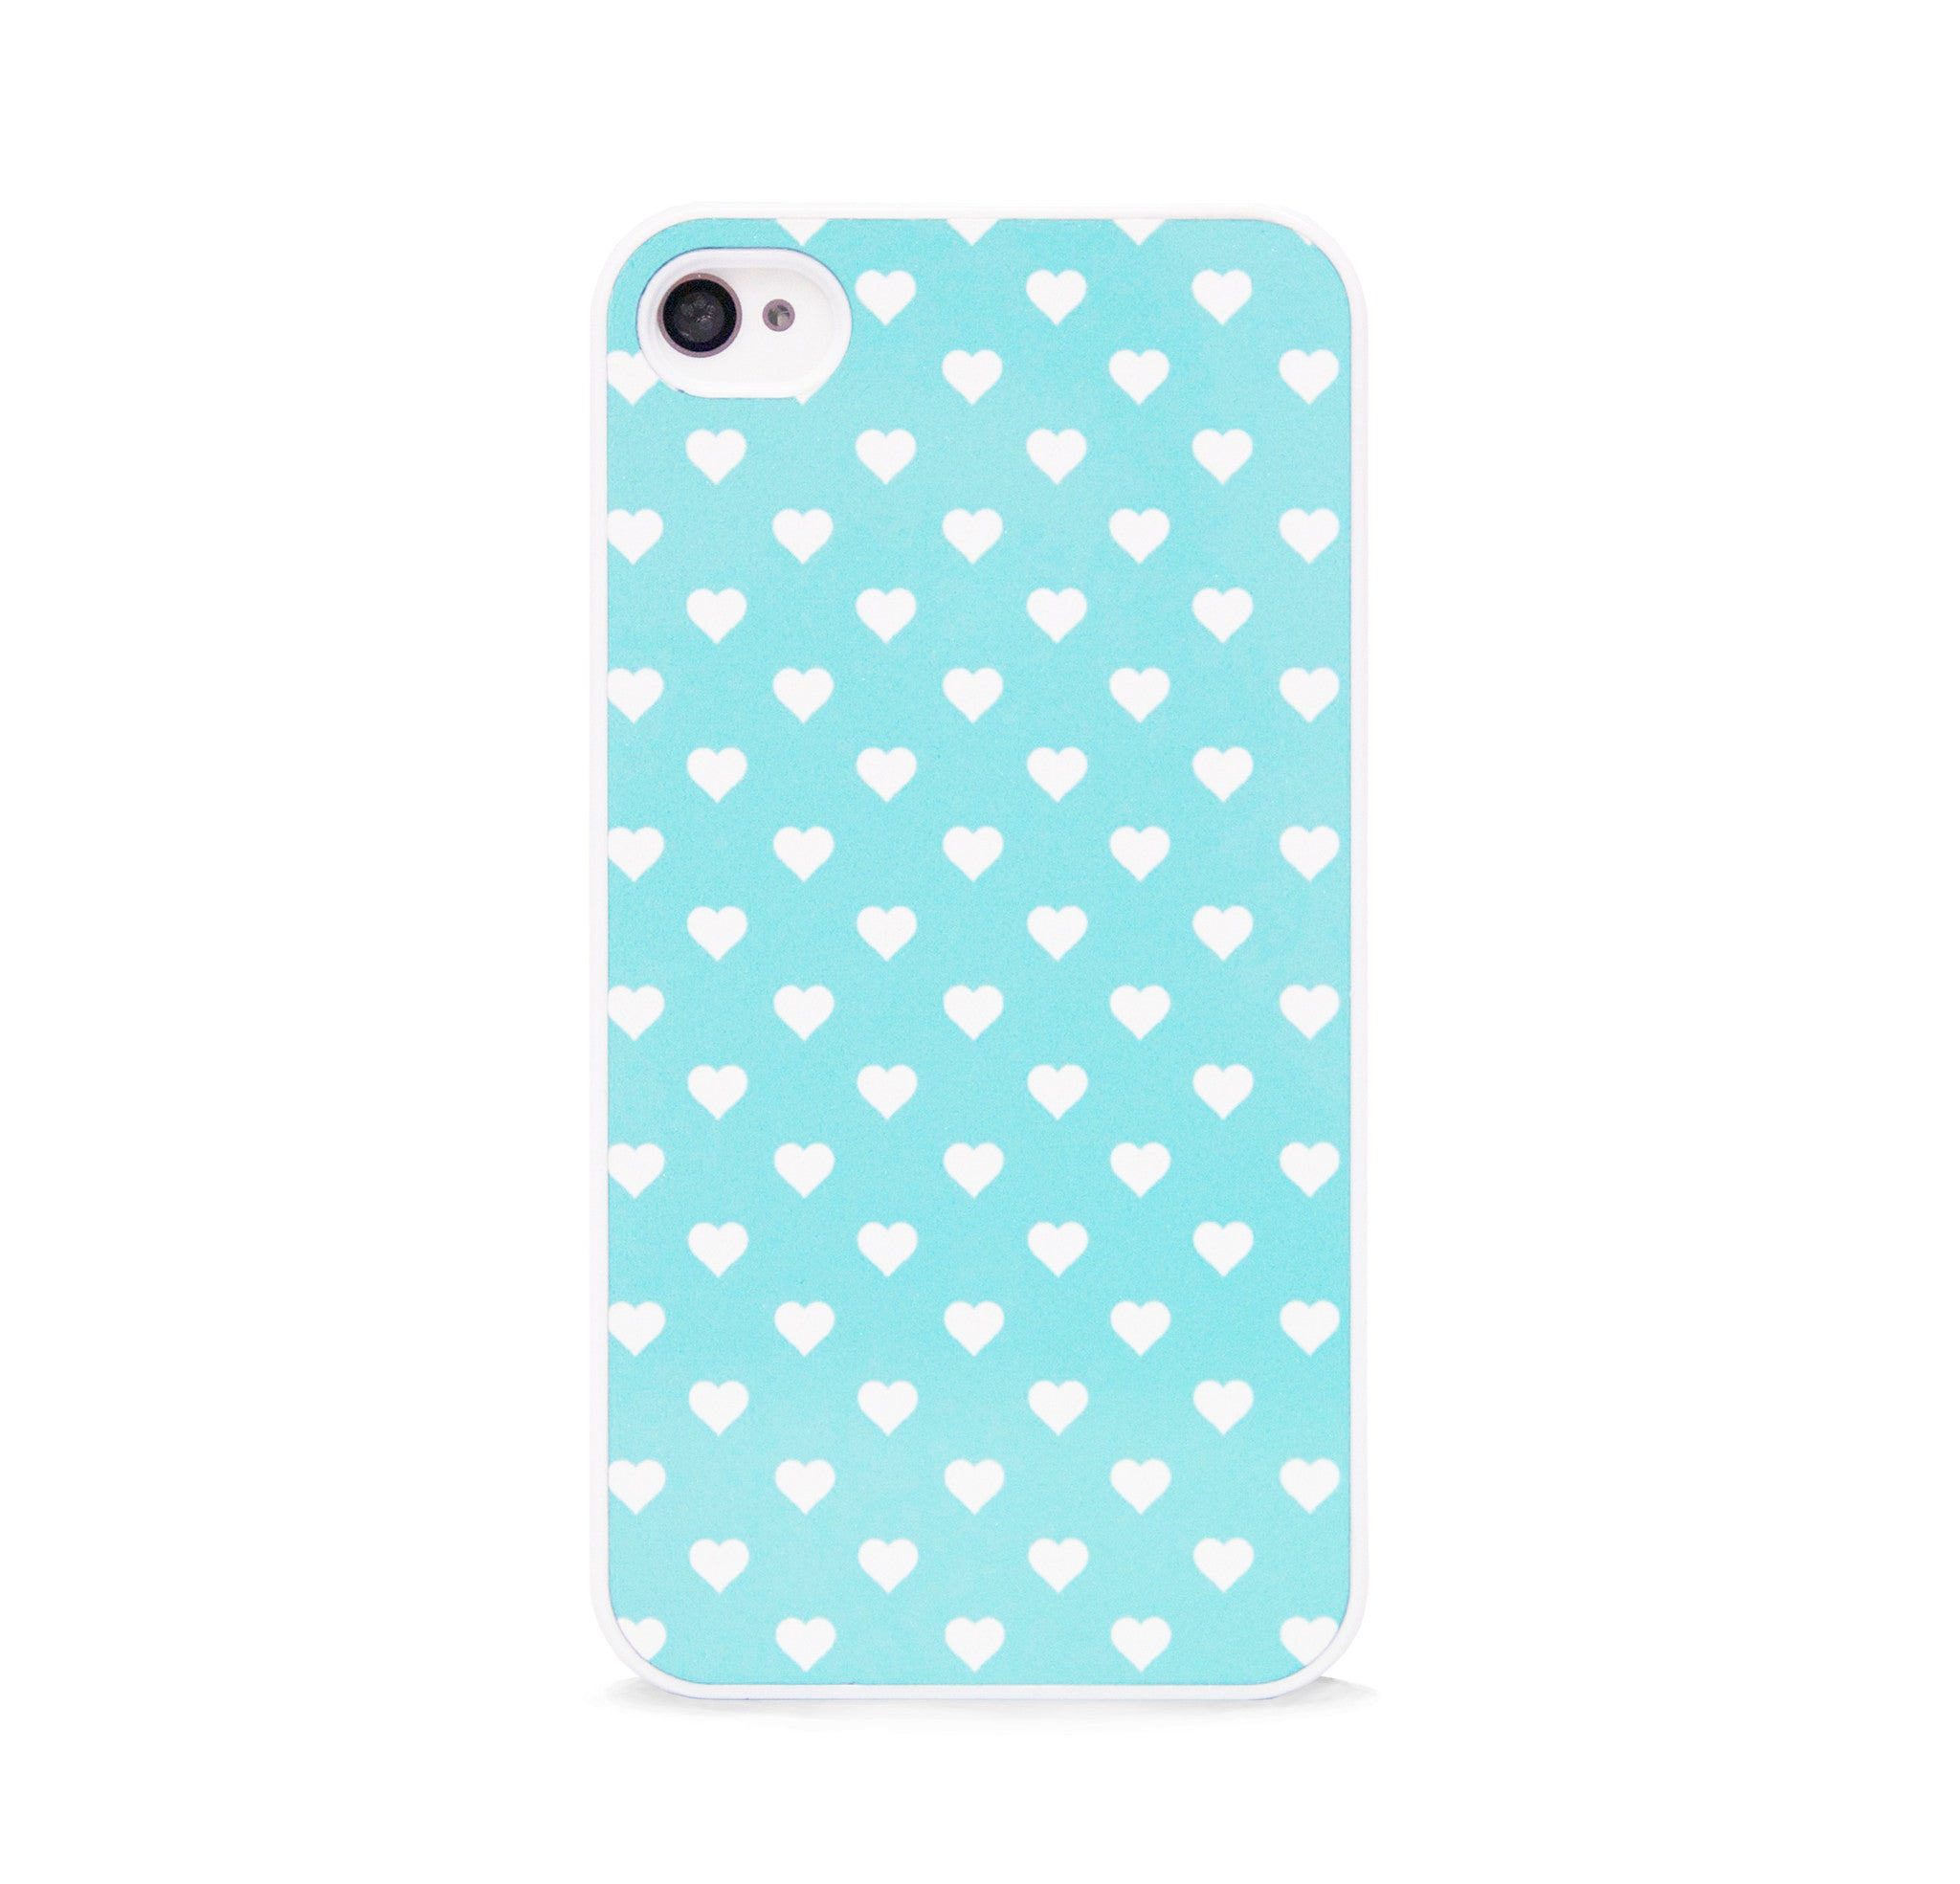 POLKA HEART MINT FOR IPHONE 4/4S